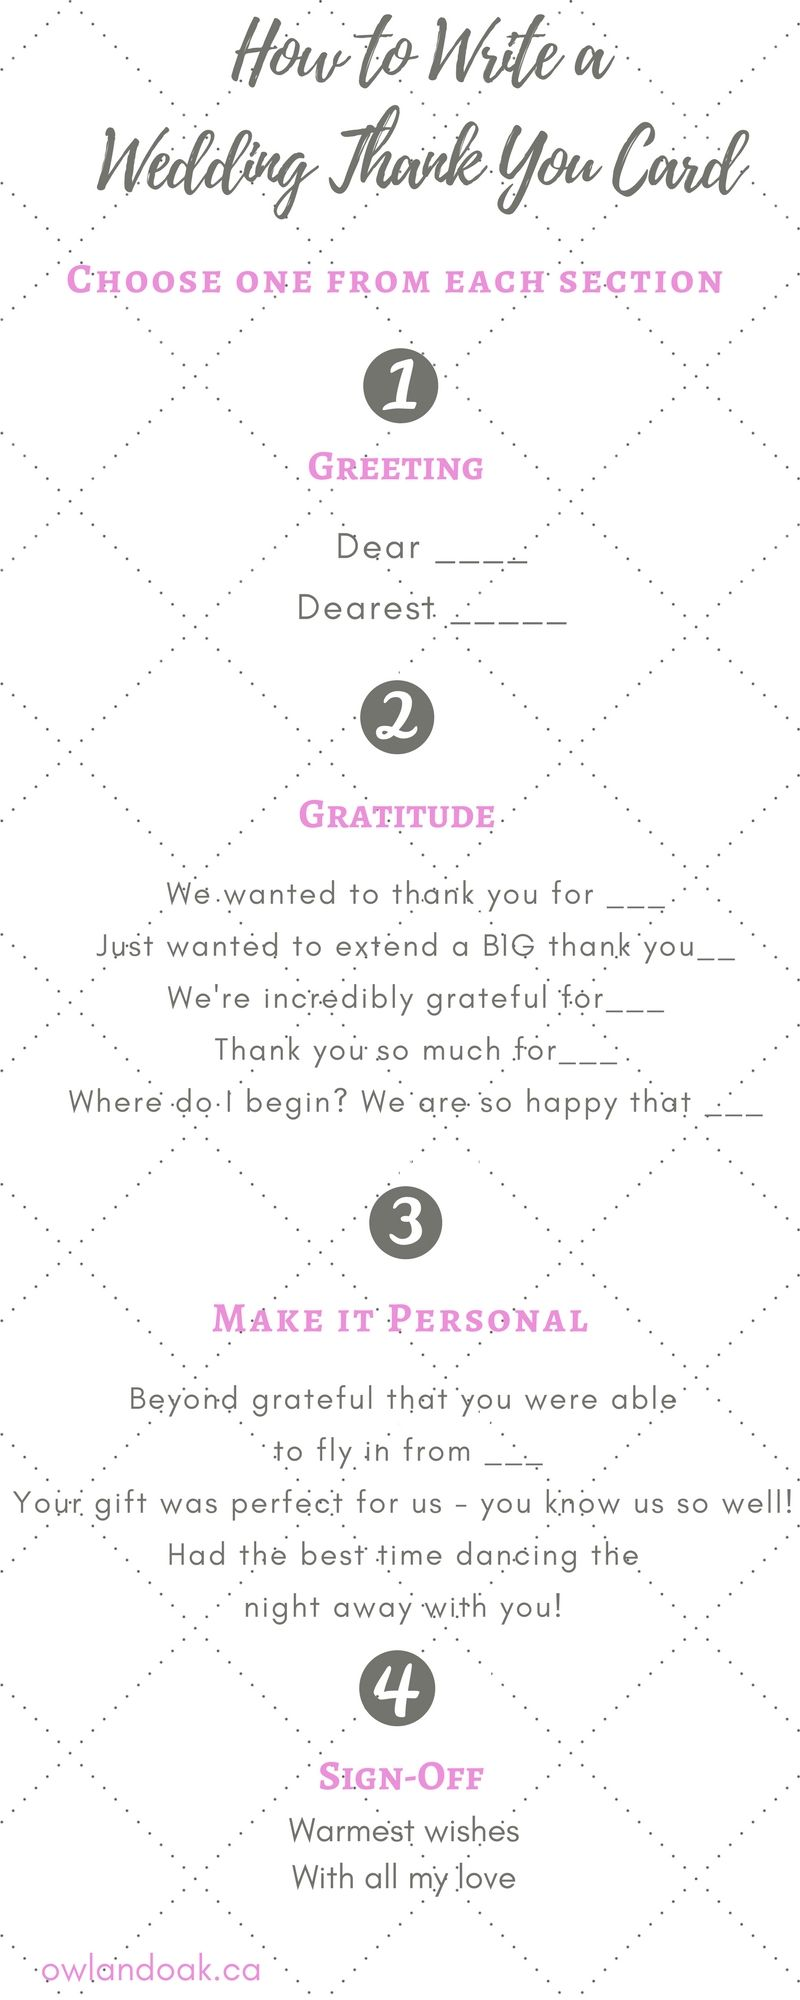 A Guide on How to Write a Wedding Thank You Card for Your